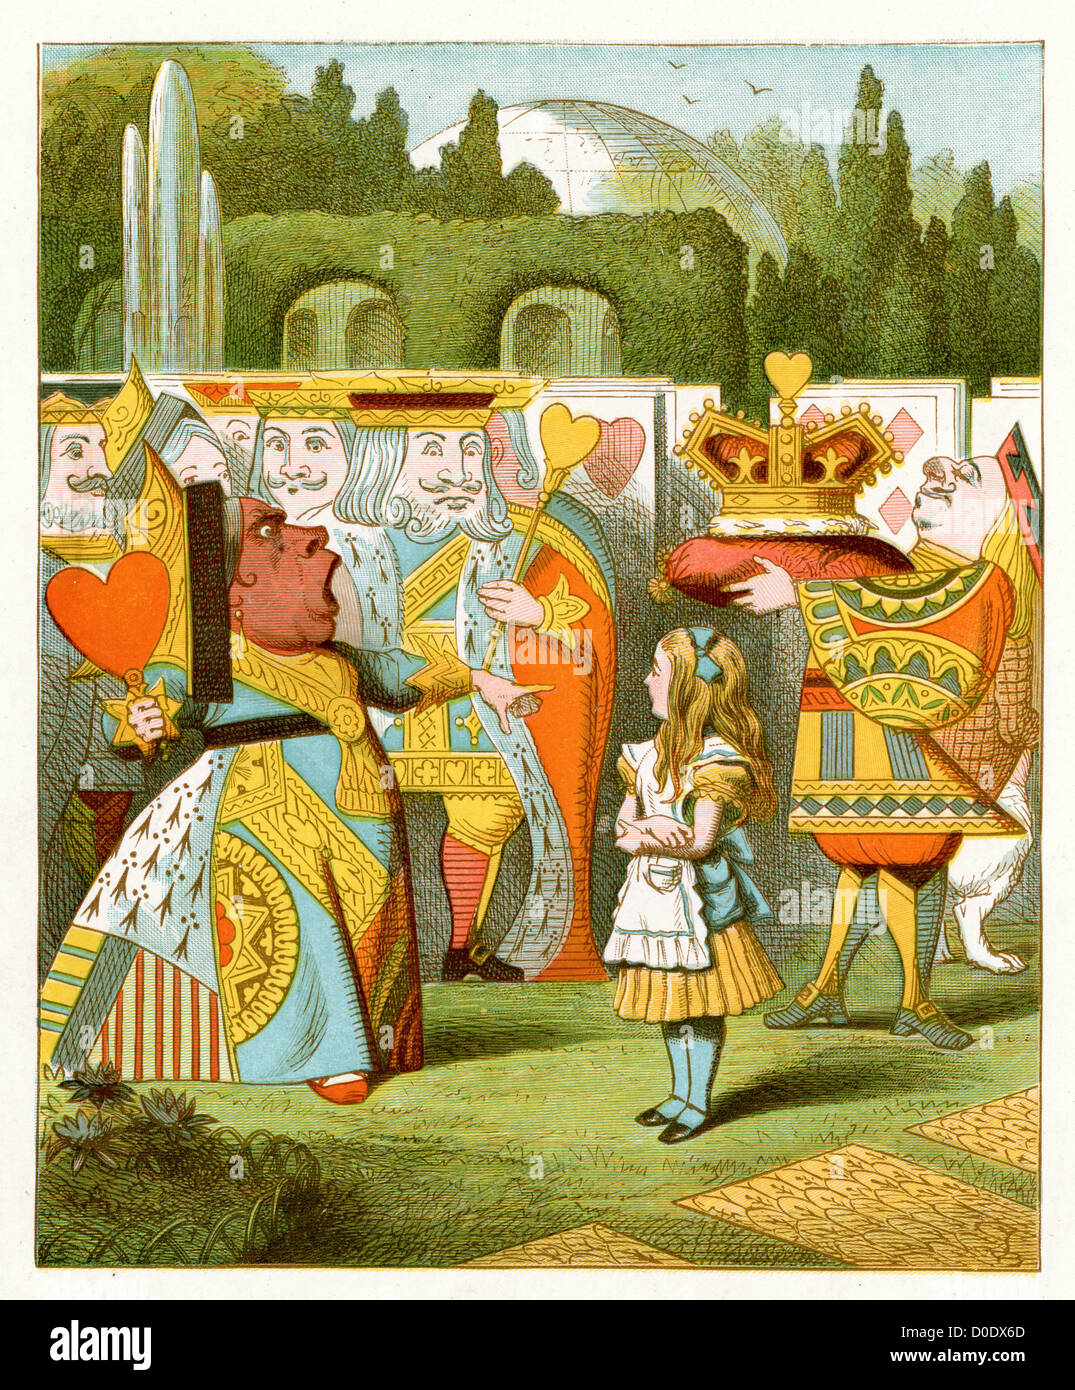 The Queen has come !, from the Lewis Carroll Story Alice in Wonderland, Illustration by Sir John Tenniel 1871 - Stock Image